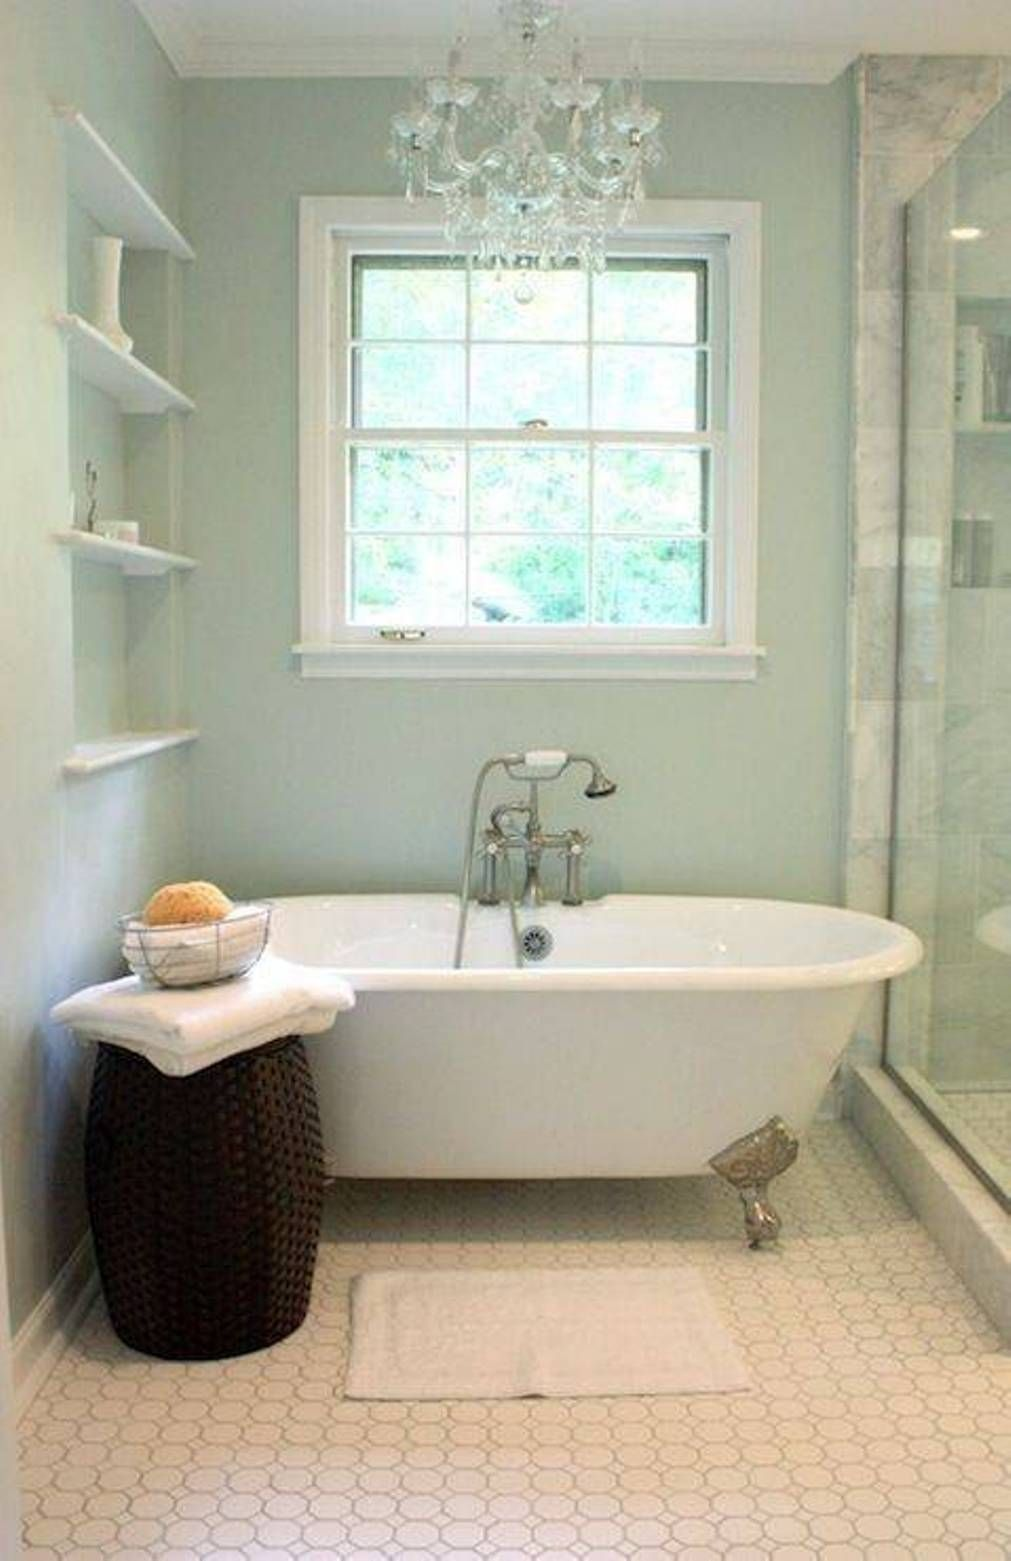 Small Bathrooms Small Bathrooms With Chandelier And Clawfoot Tub ...